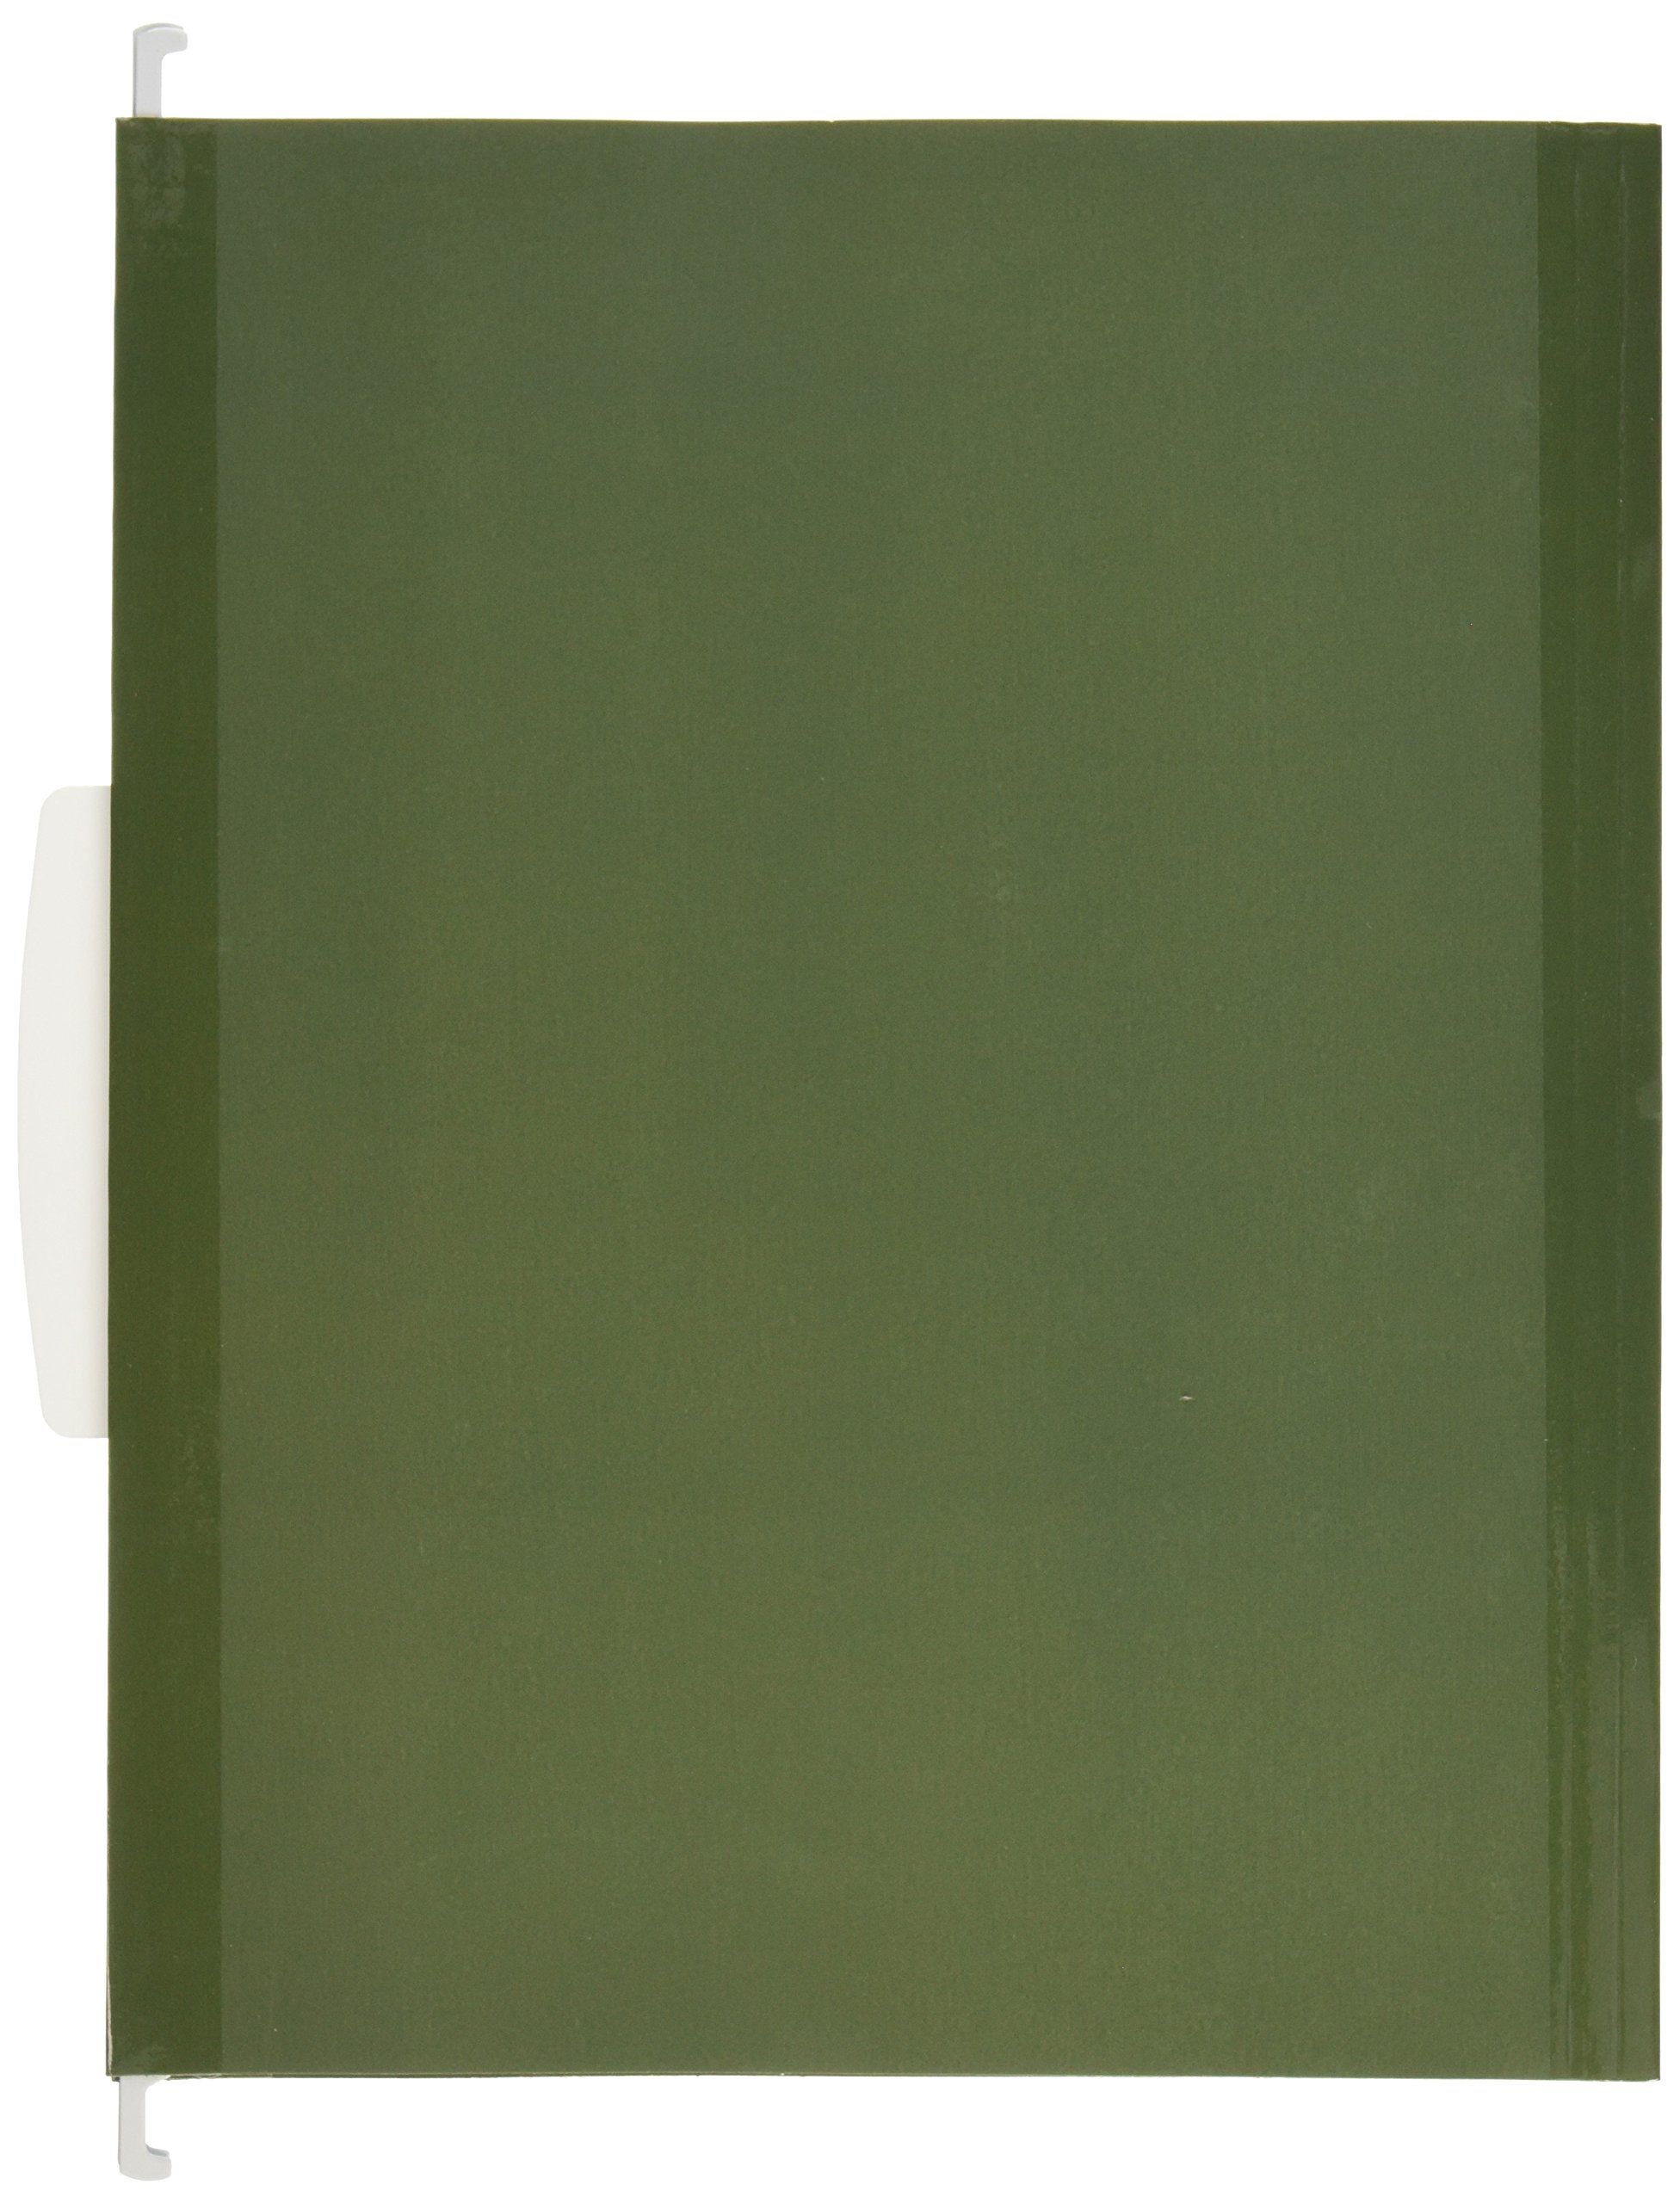 Avery Slide and Lift Tab Hanging Folder, Green, Letter Size, Pack of 12 (73505)